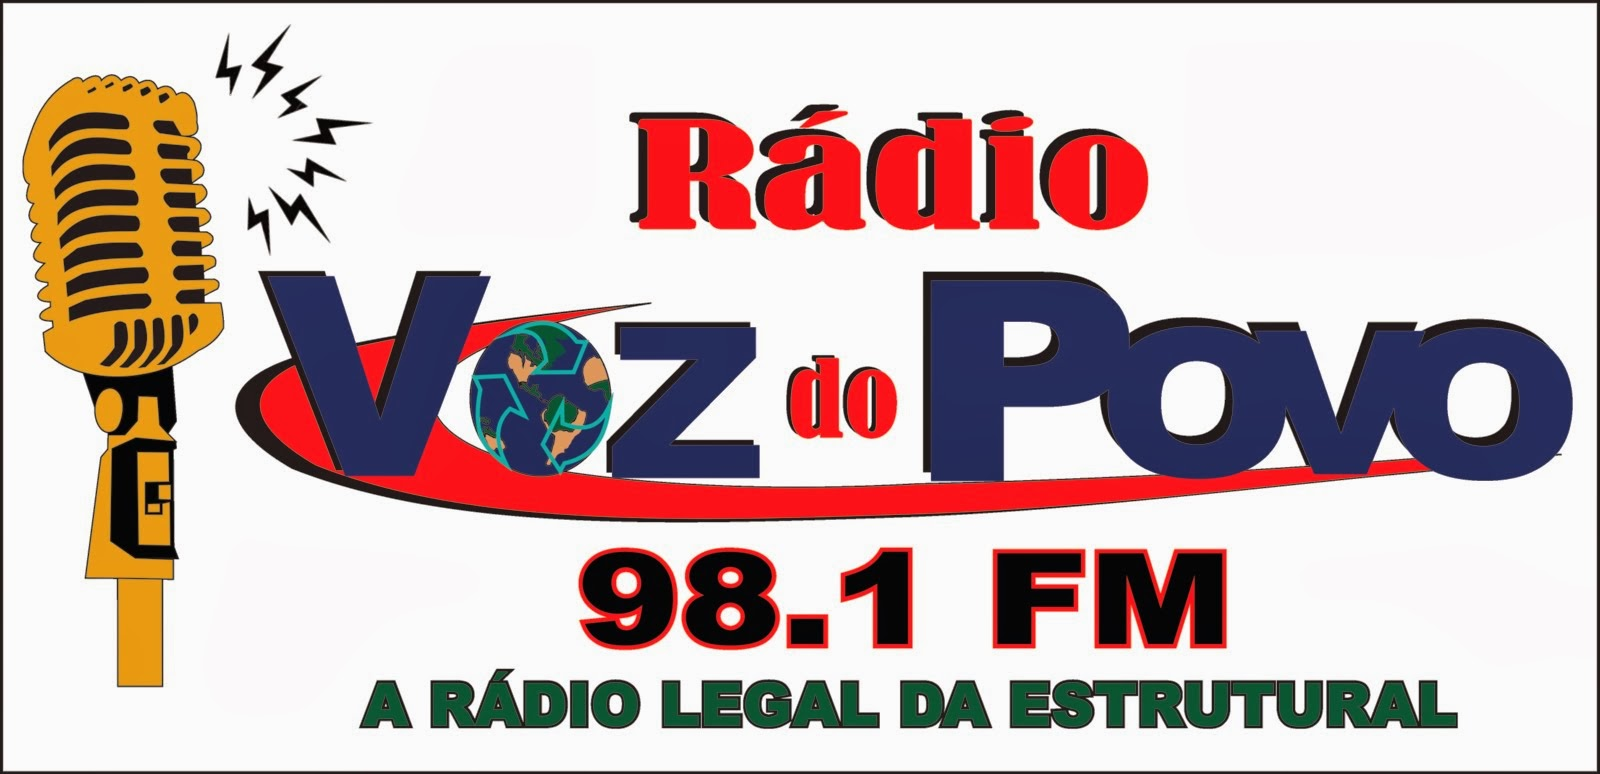 Radio voz do povo